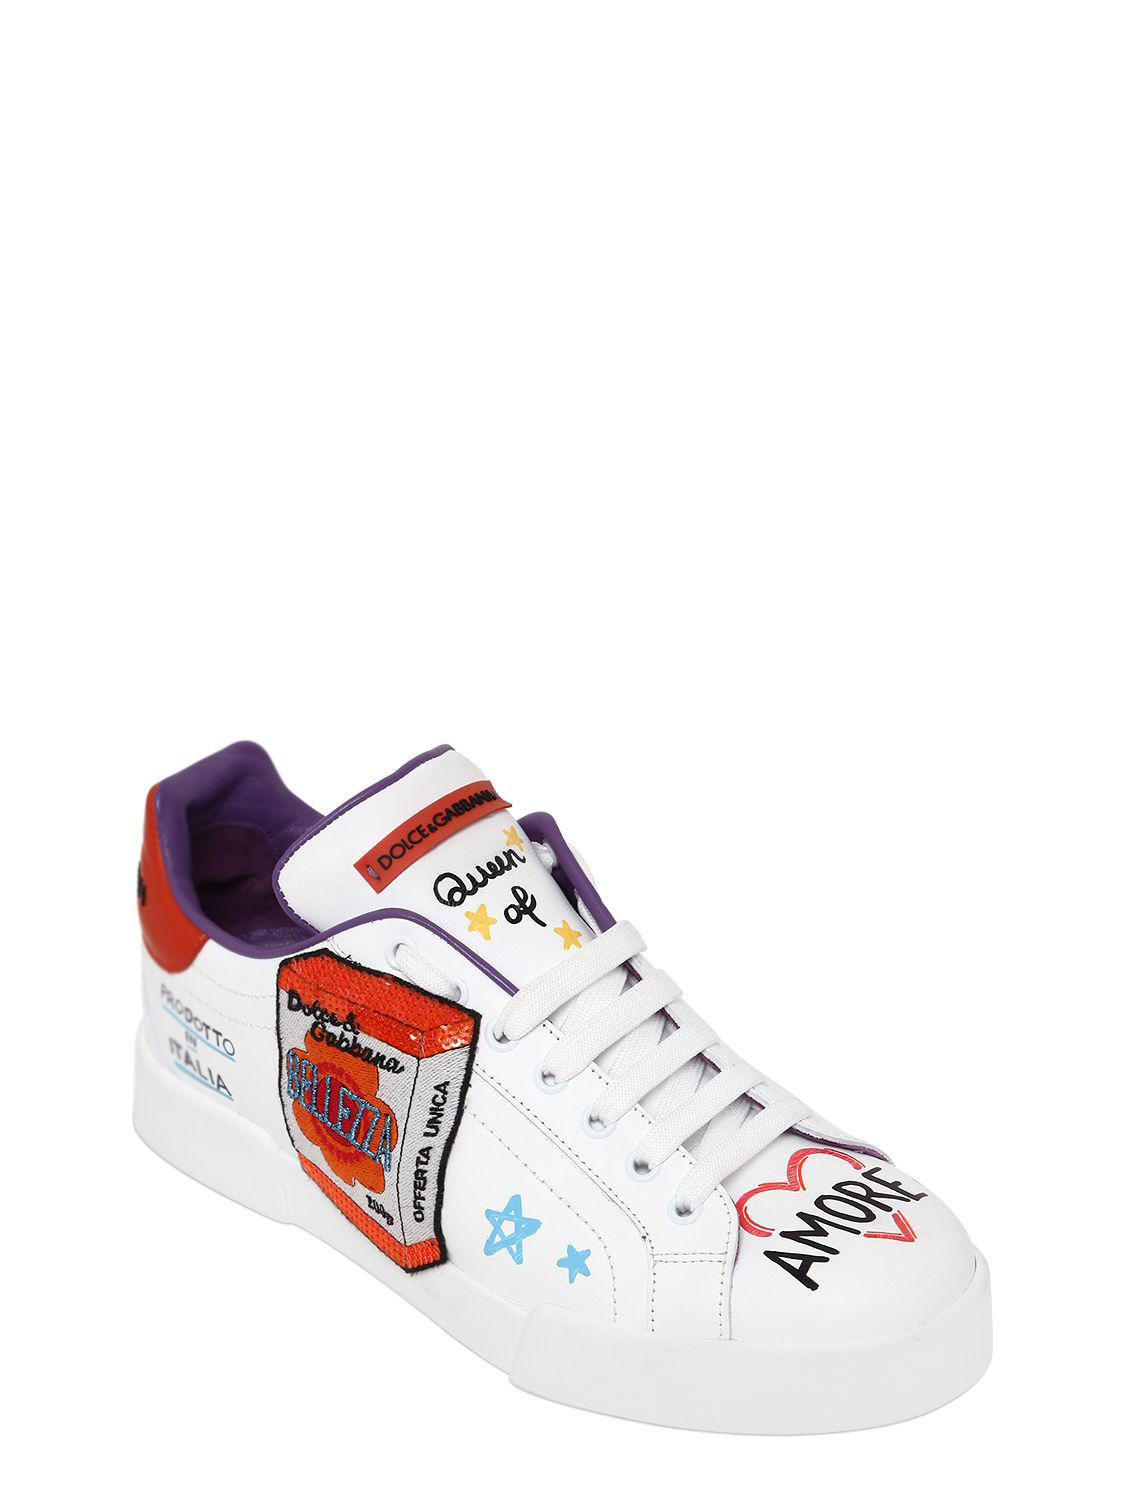 Dolce & Gabbana 20MM GRAFFITI & PATCHES LEATHER SNEAKERS 9TnZlidW